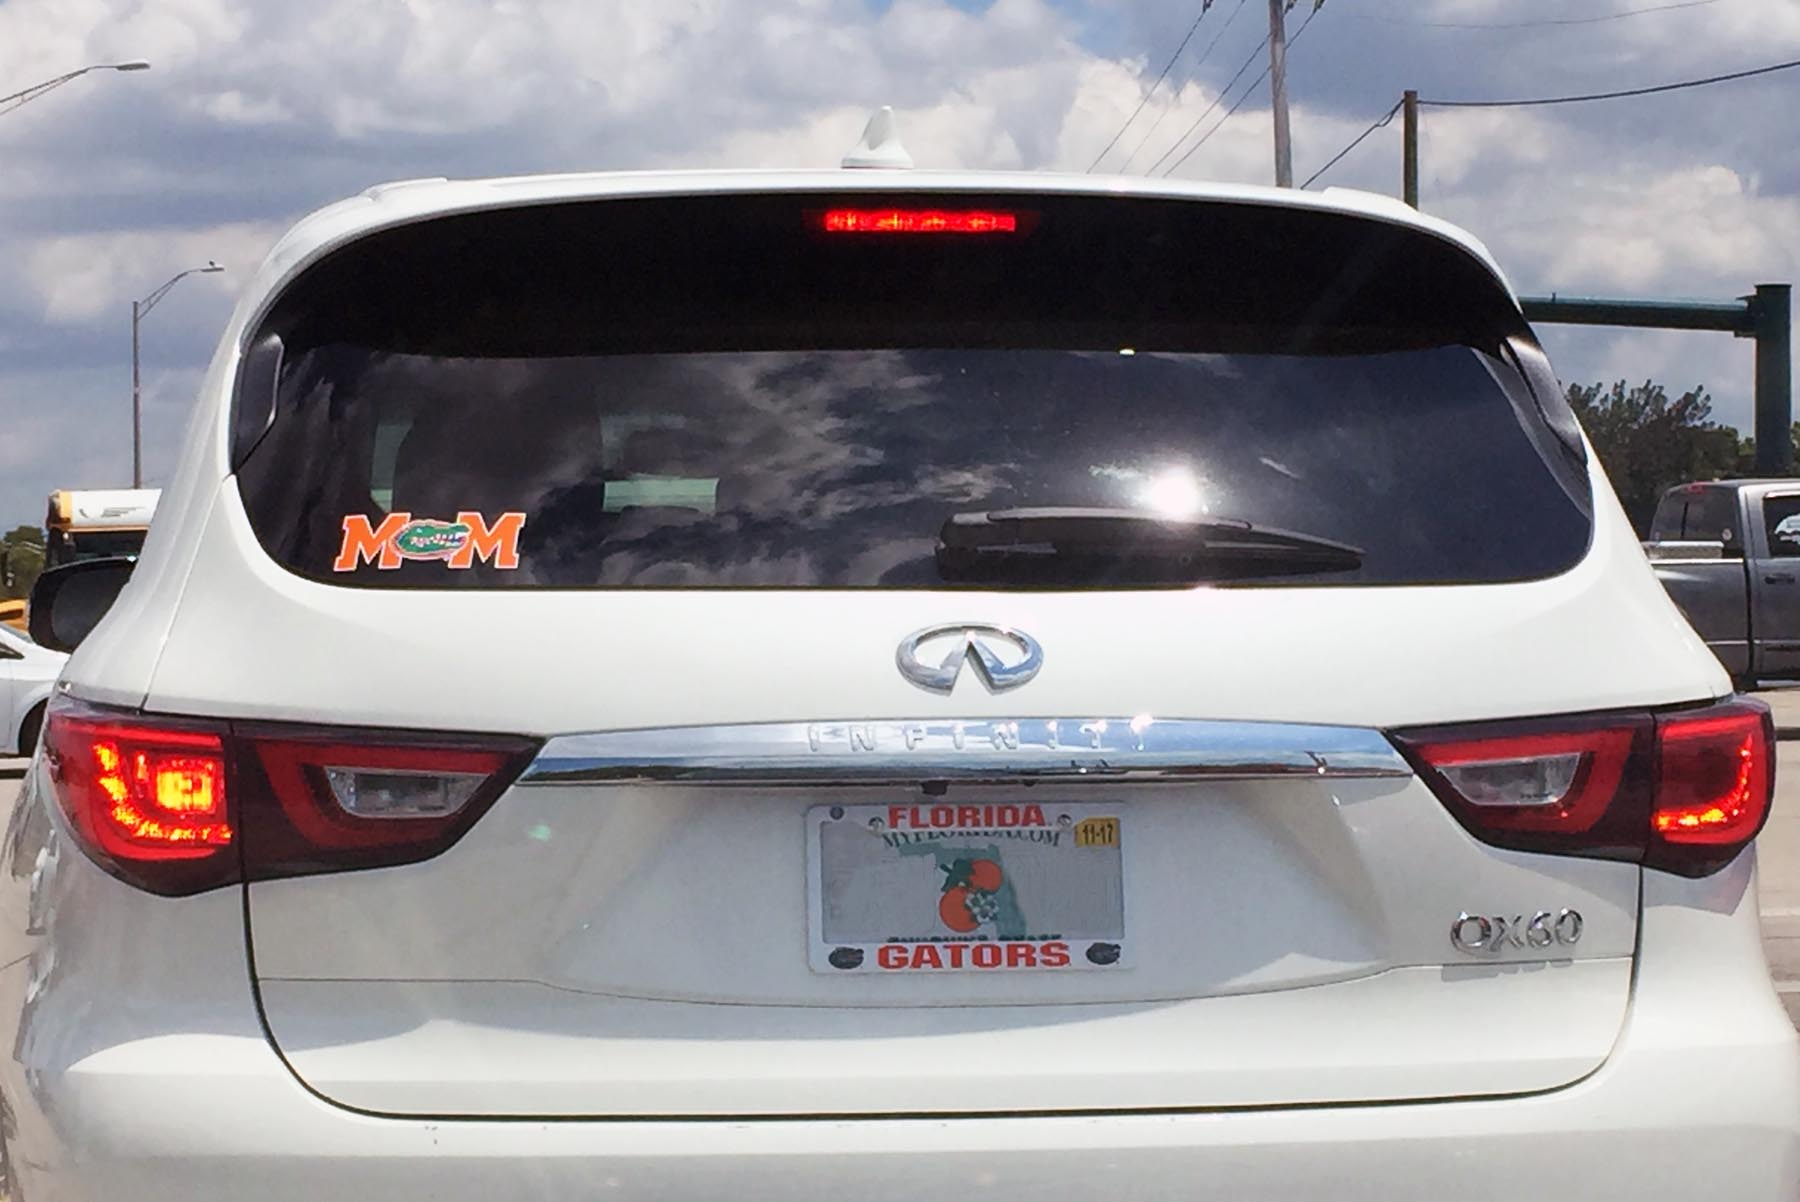 The great feeling you get seeing a Gators decal! – A GATOR IN NAPLES